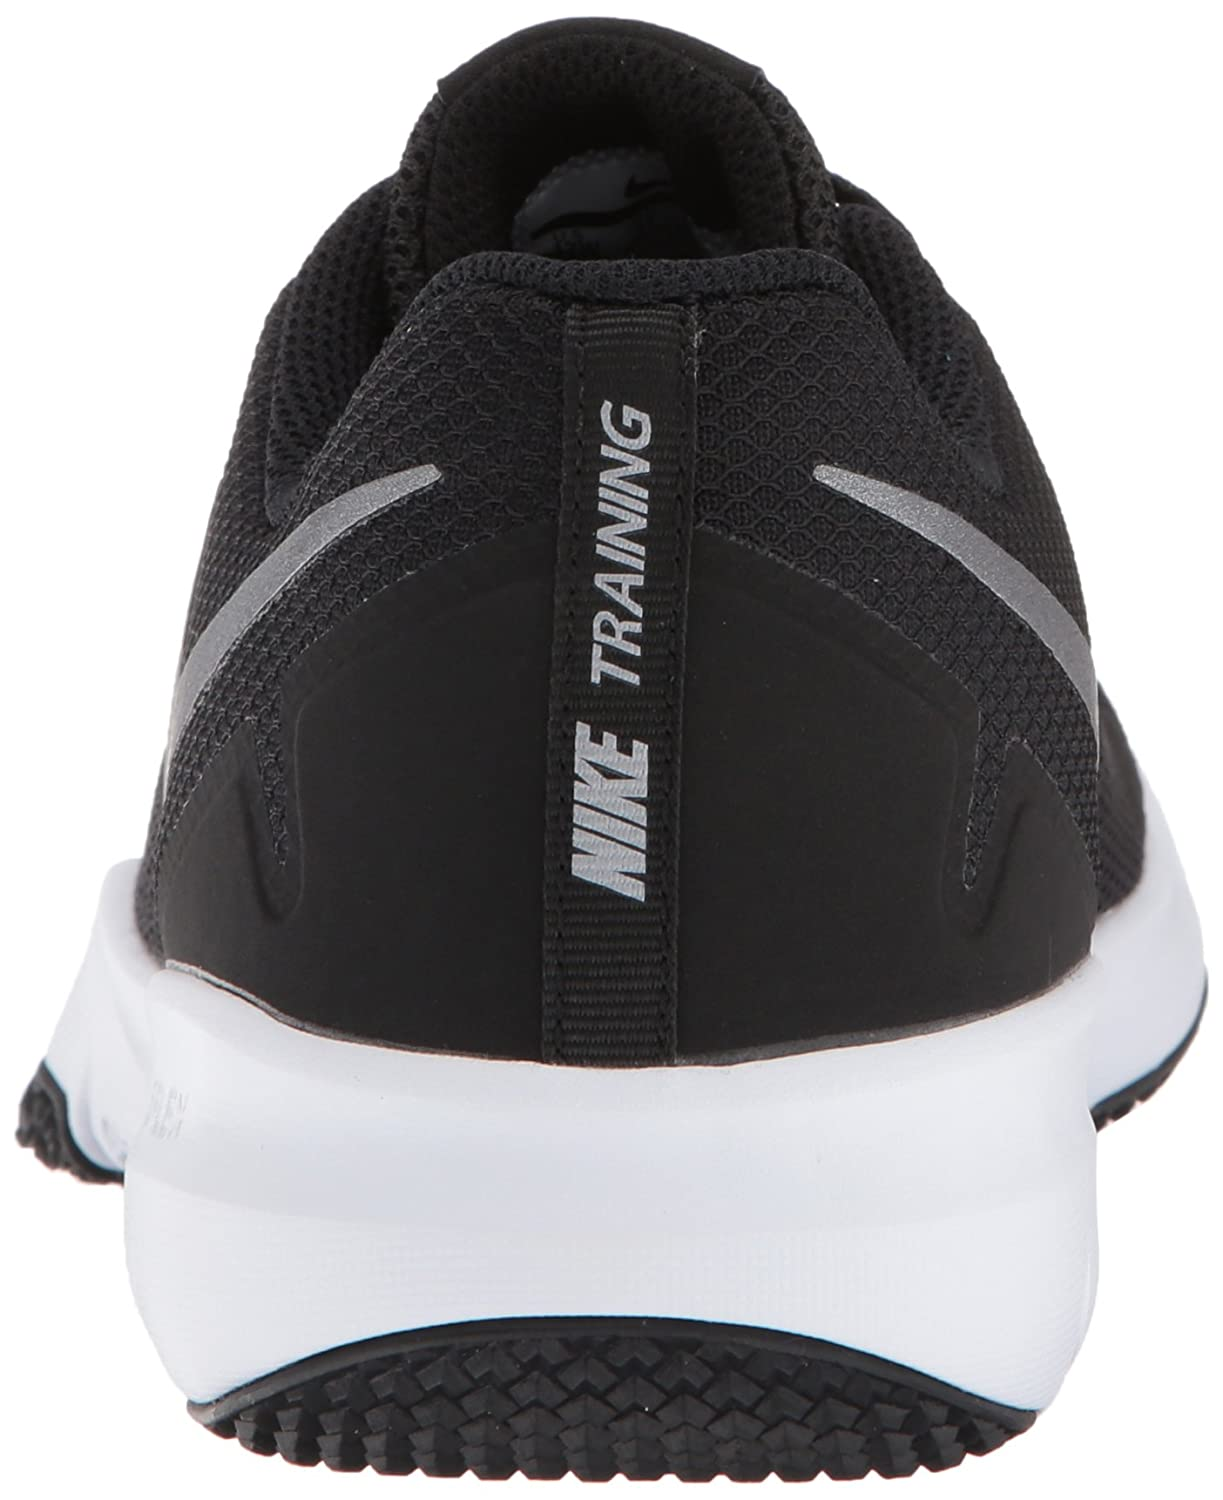 9e9d6649e4ac Nike Men s Flex Control II Black Metallic Cool Grey-Cool Grey-White Running  Shoes  Buy Online at Low Prices in India - Amazon.in